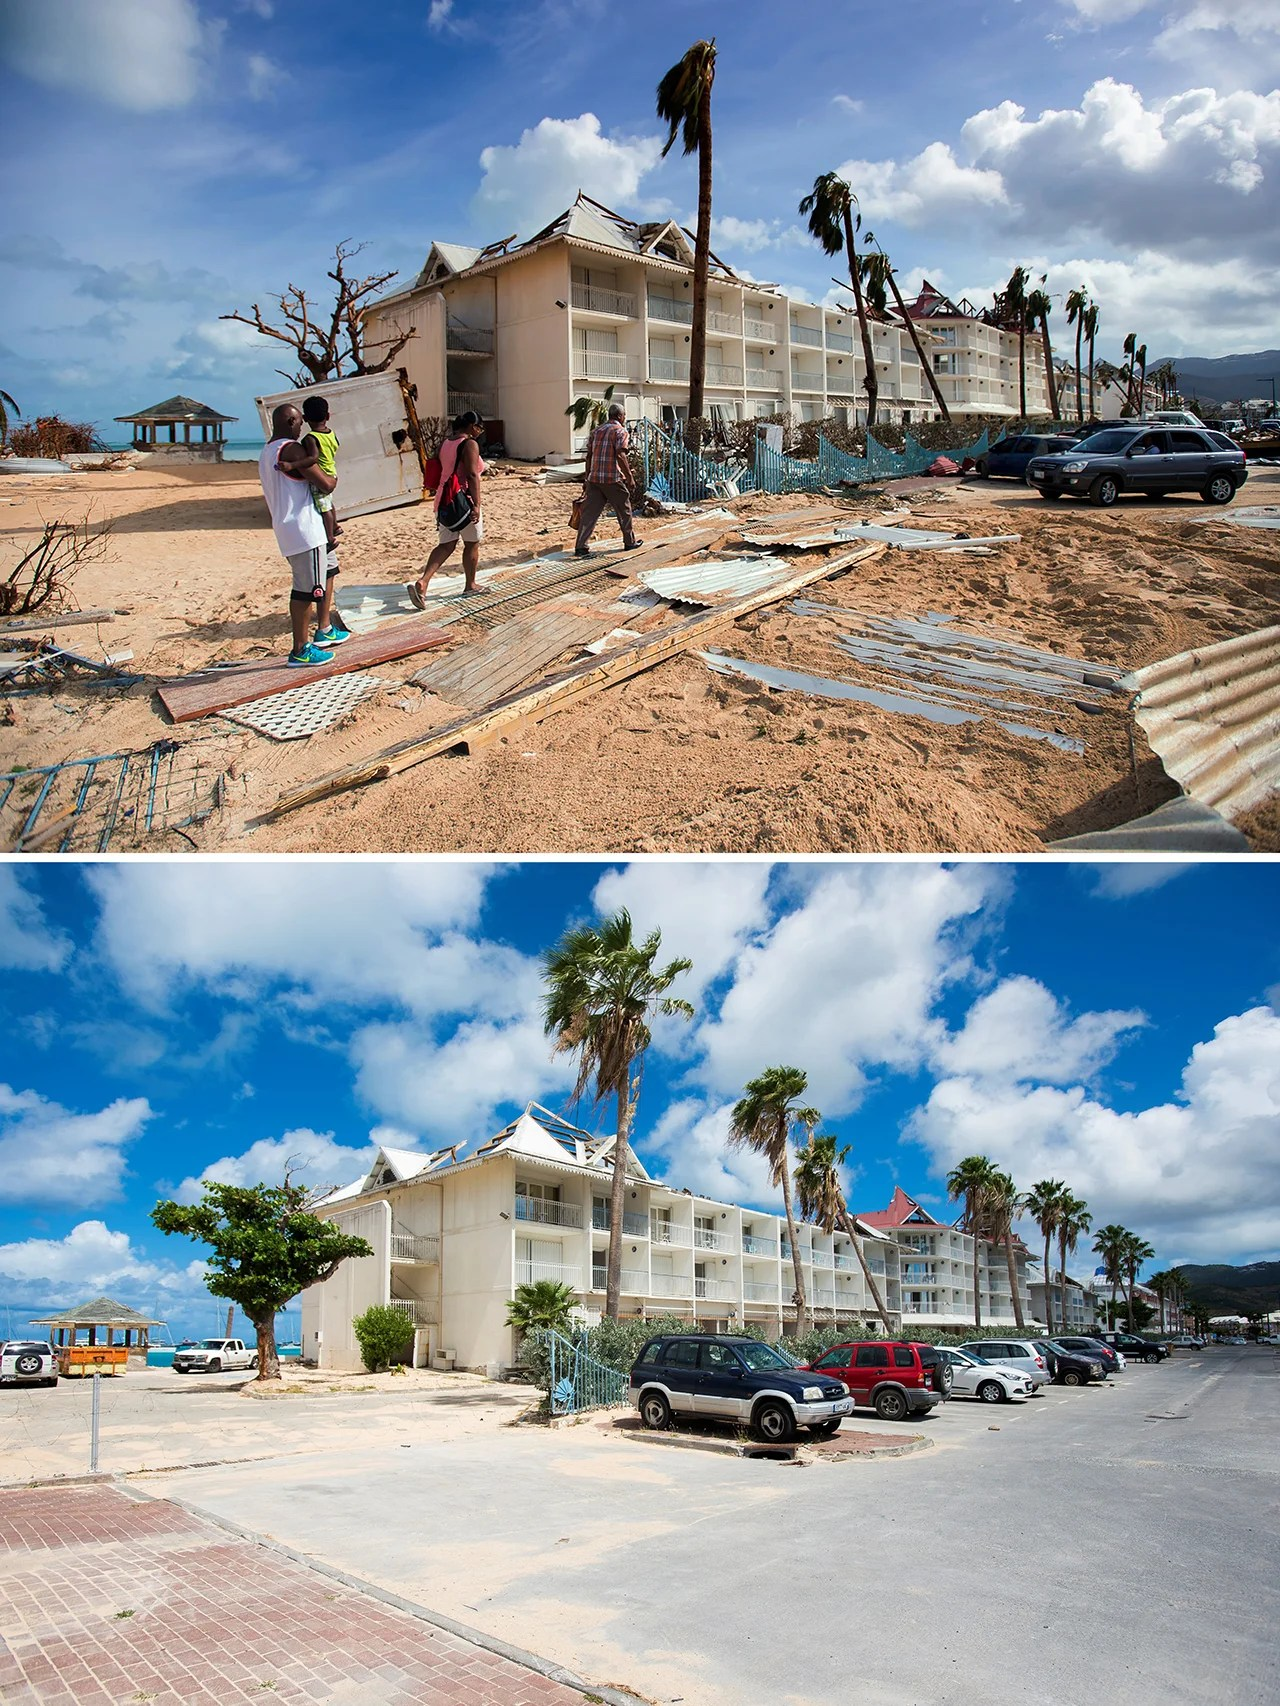 How the Caribbean Is Recovering, One Year After Devastating